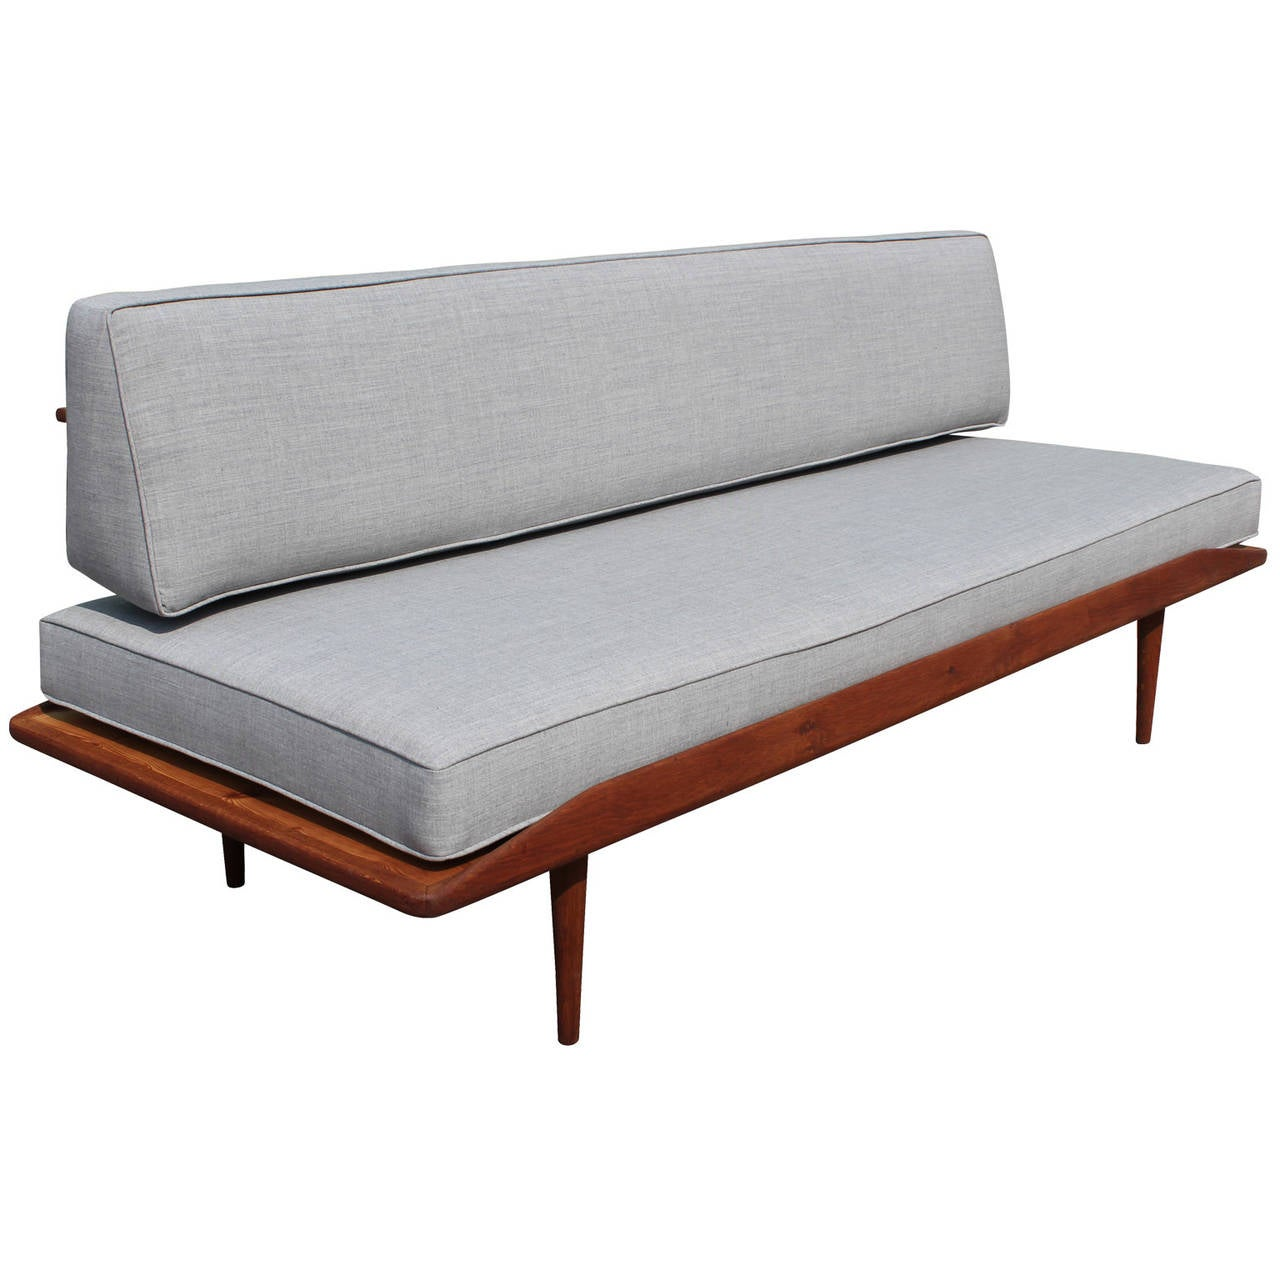 Daybed Couches 28 Images Sofa Daybed Modern Teak Sofa Daybed By Peter Hvidt For Classic